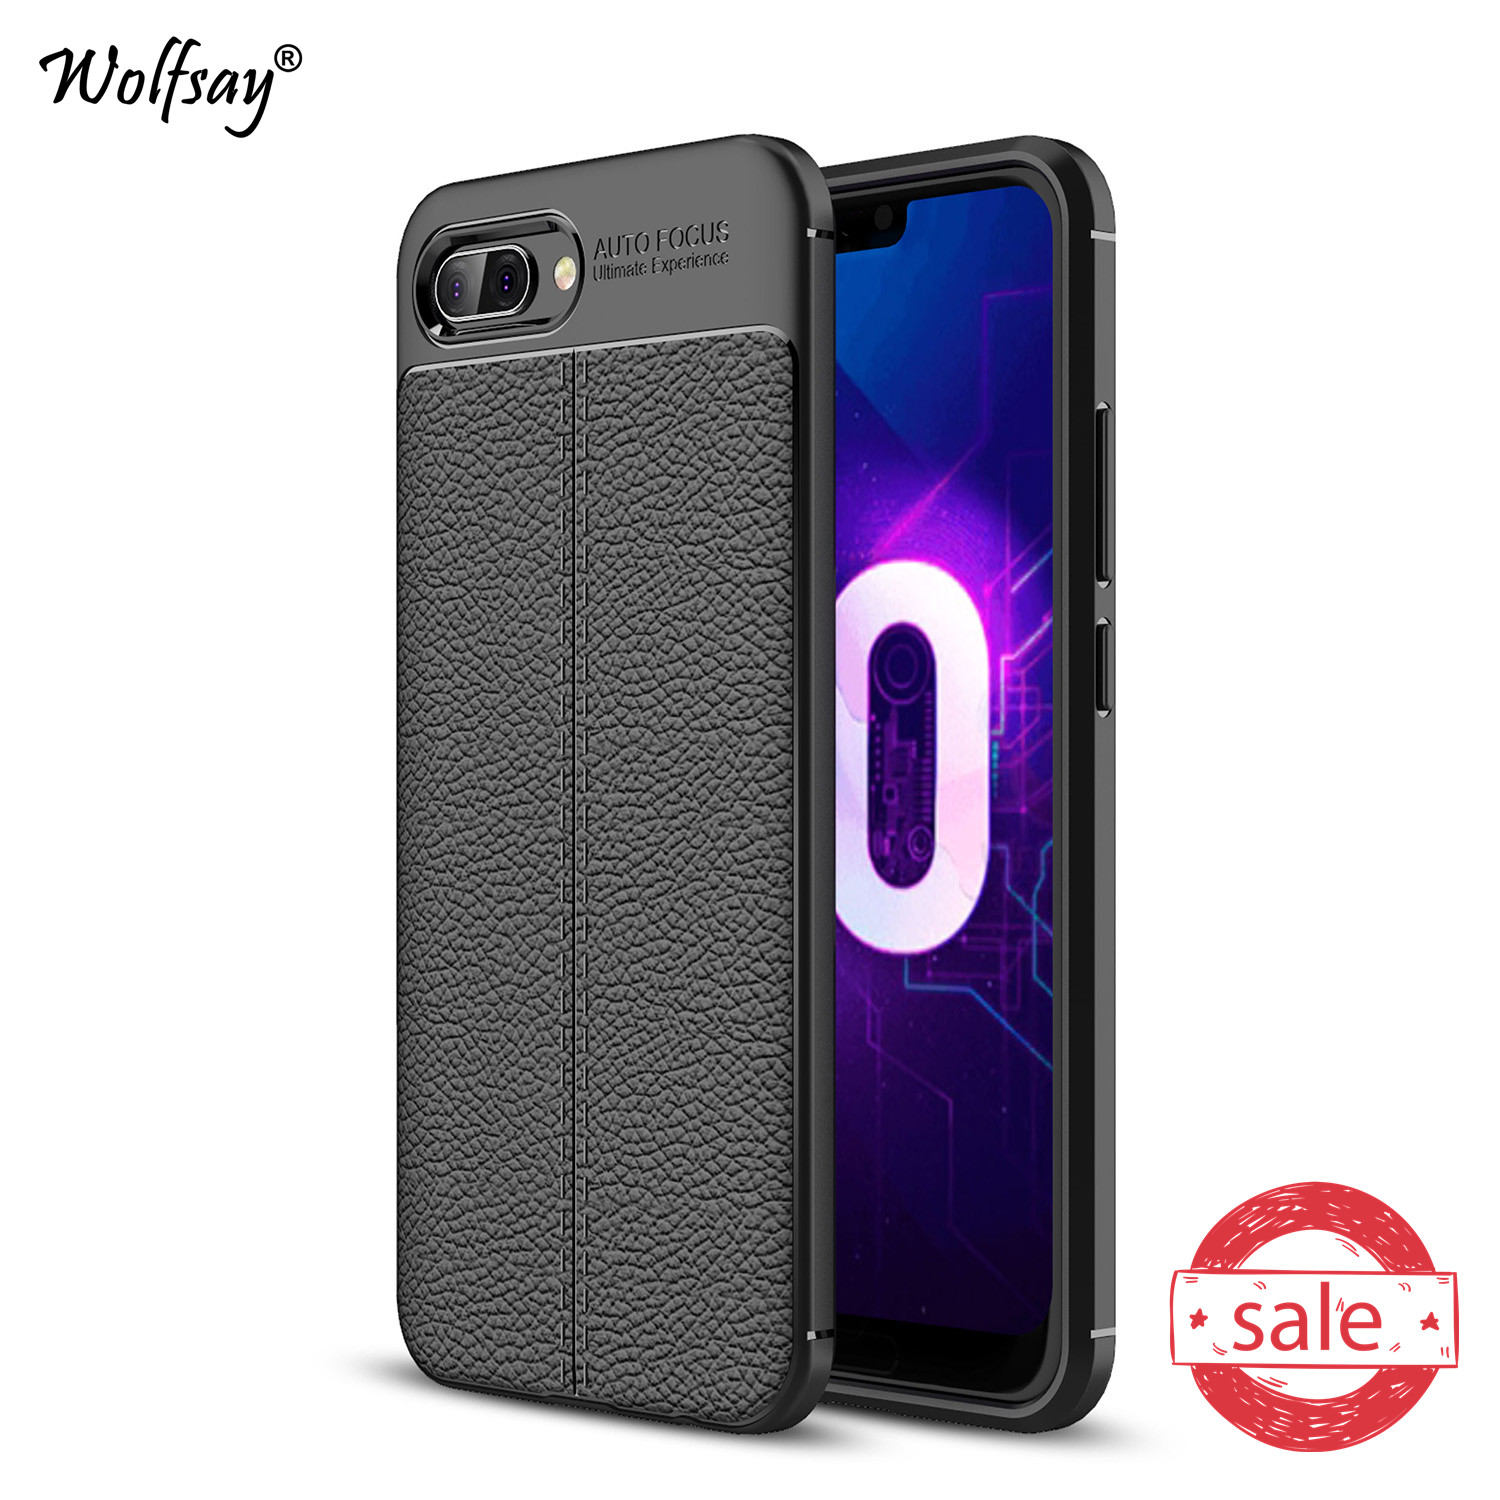 Phone Case Huawei Honor 10 Cover Honor10 COL-l29 Litchi Pattern Cases Soft TPU Case for Huawei Honor 10 Cover Huawei Honor 10